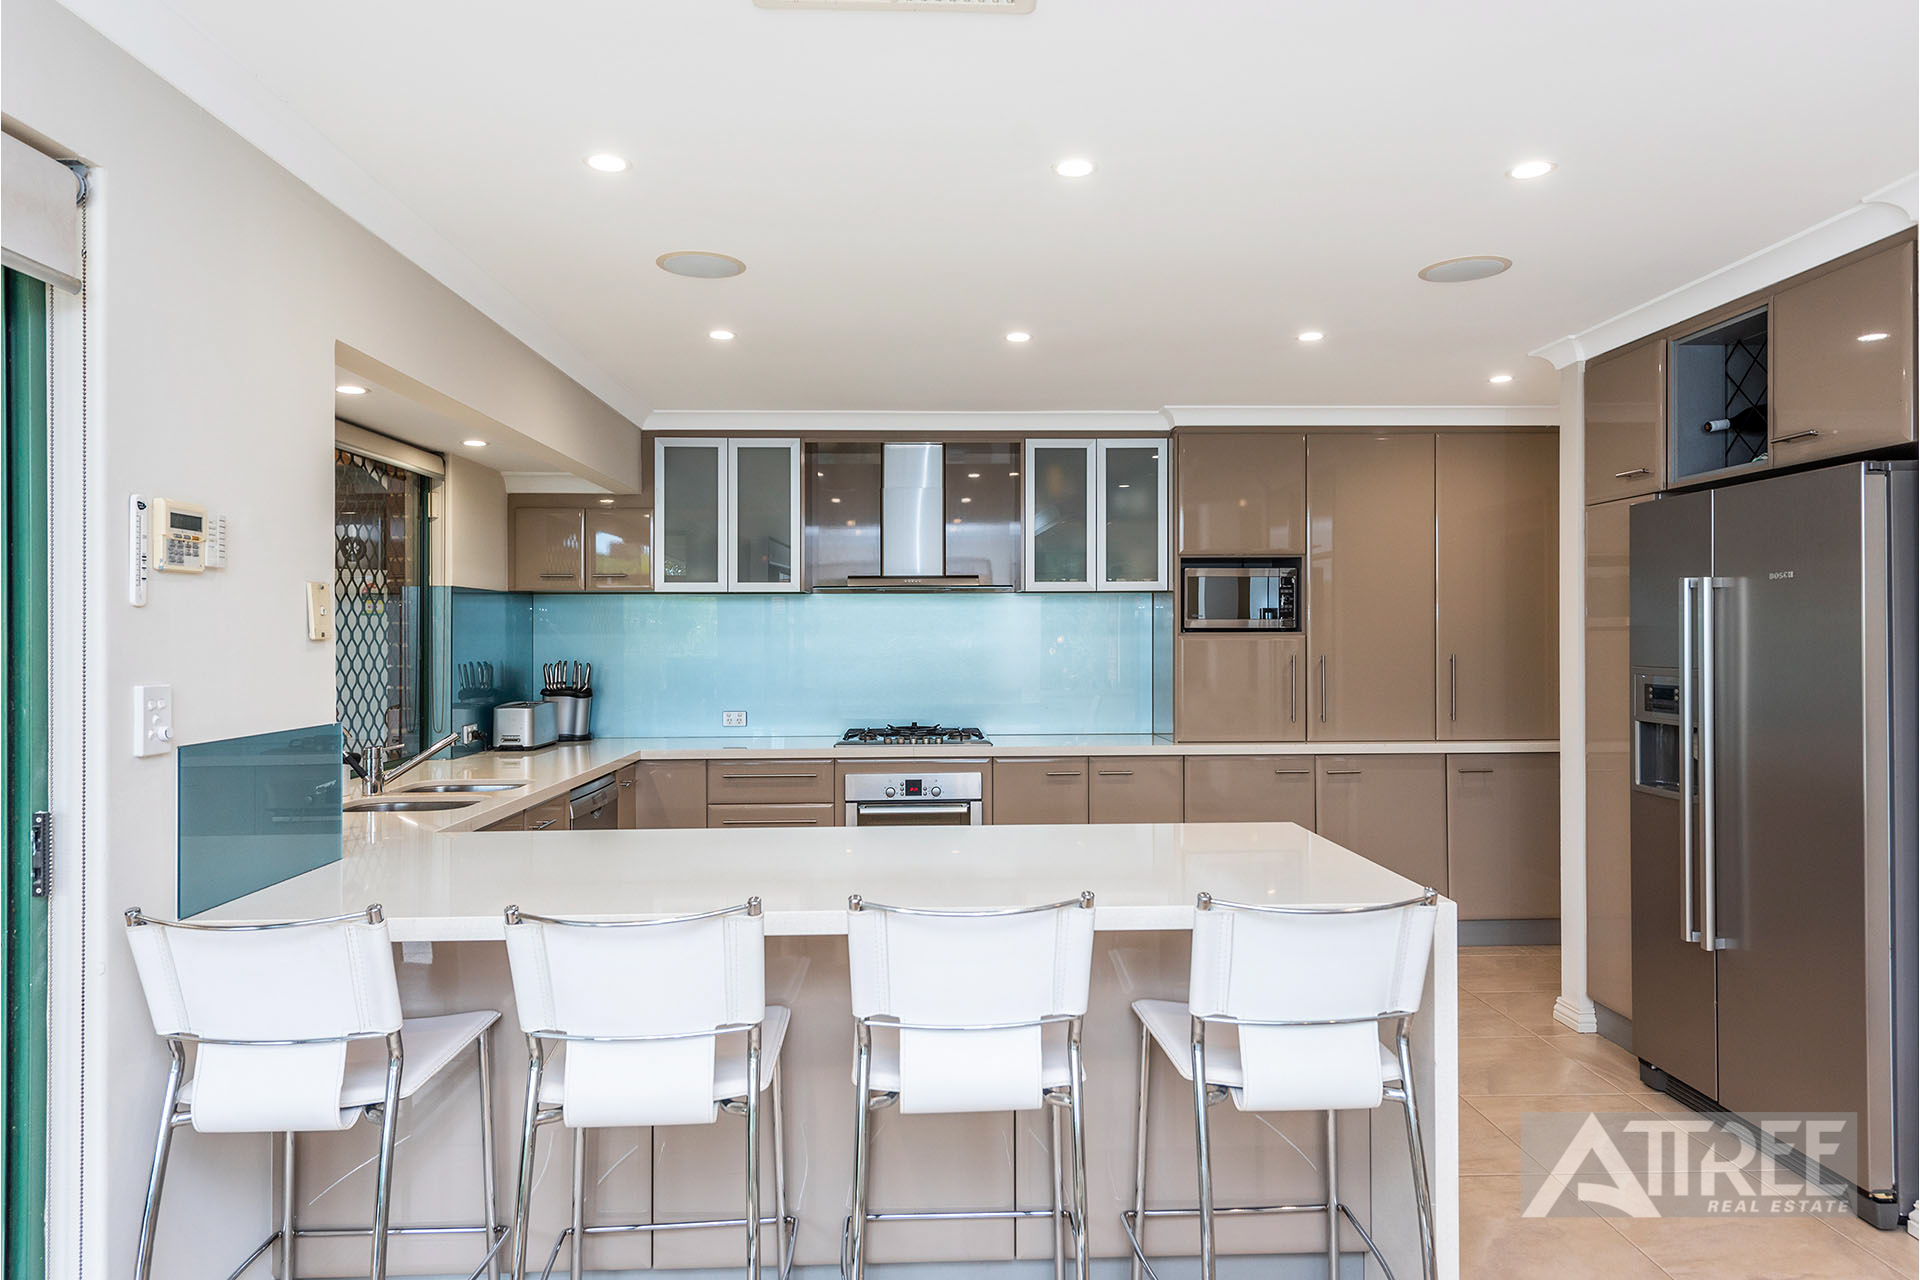 Property for sale in CANNING VALE, 10 Burtonia Place, Christina Felton : Attree Real Estate